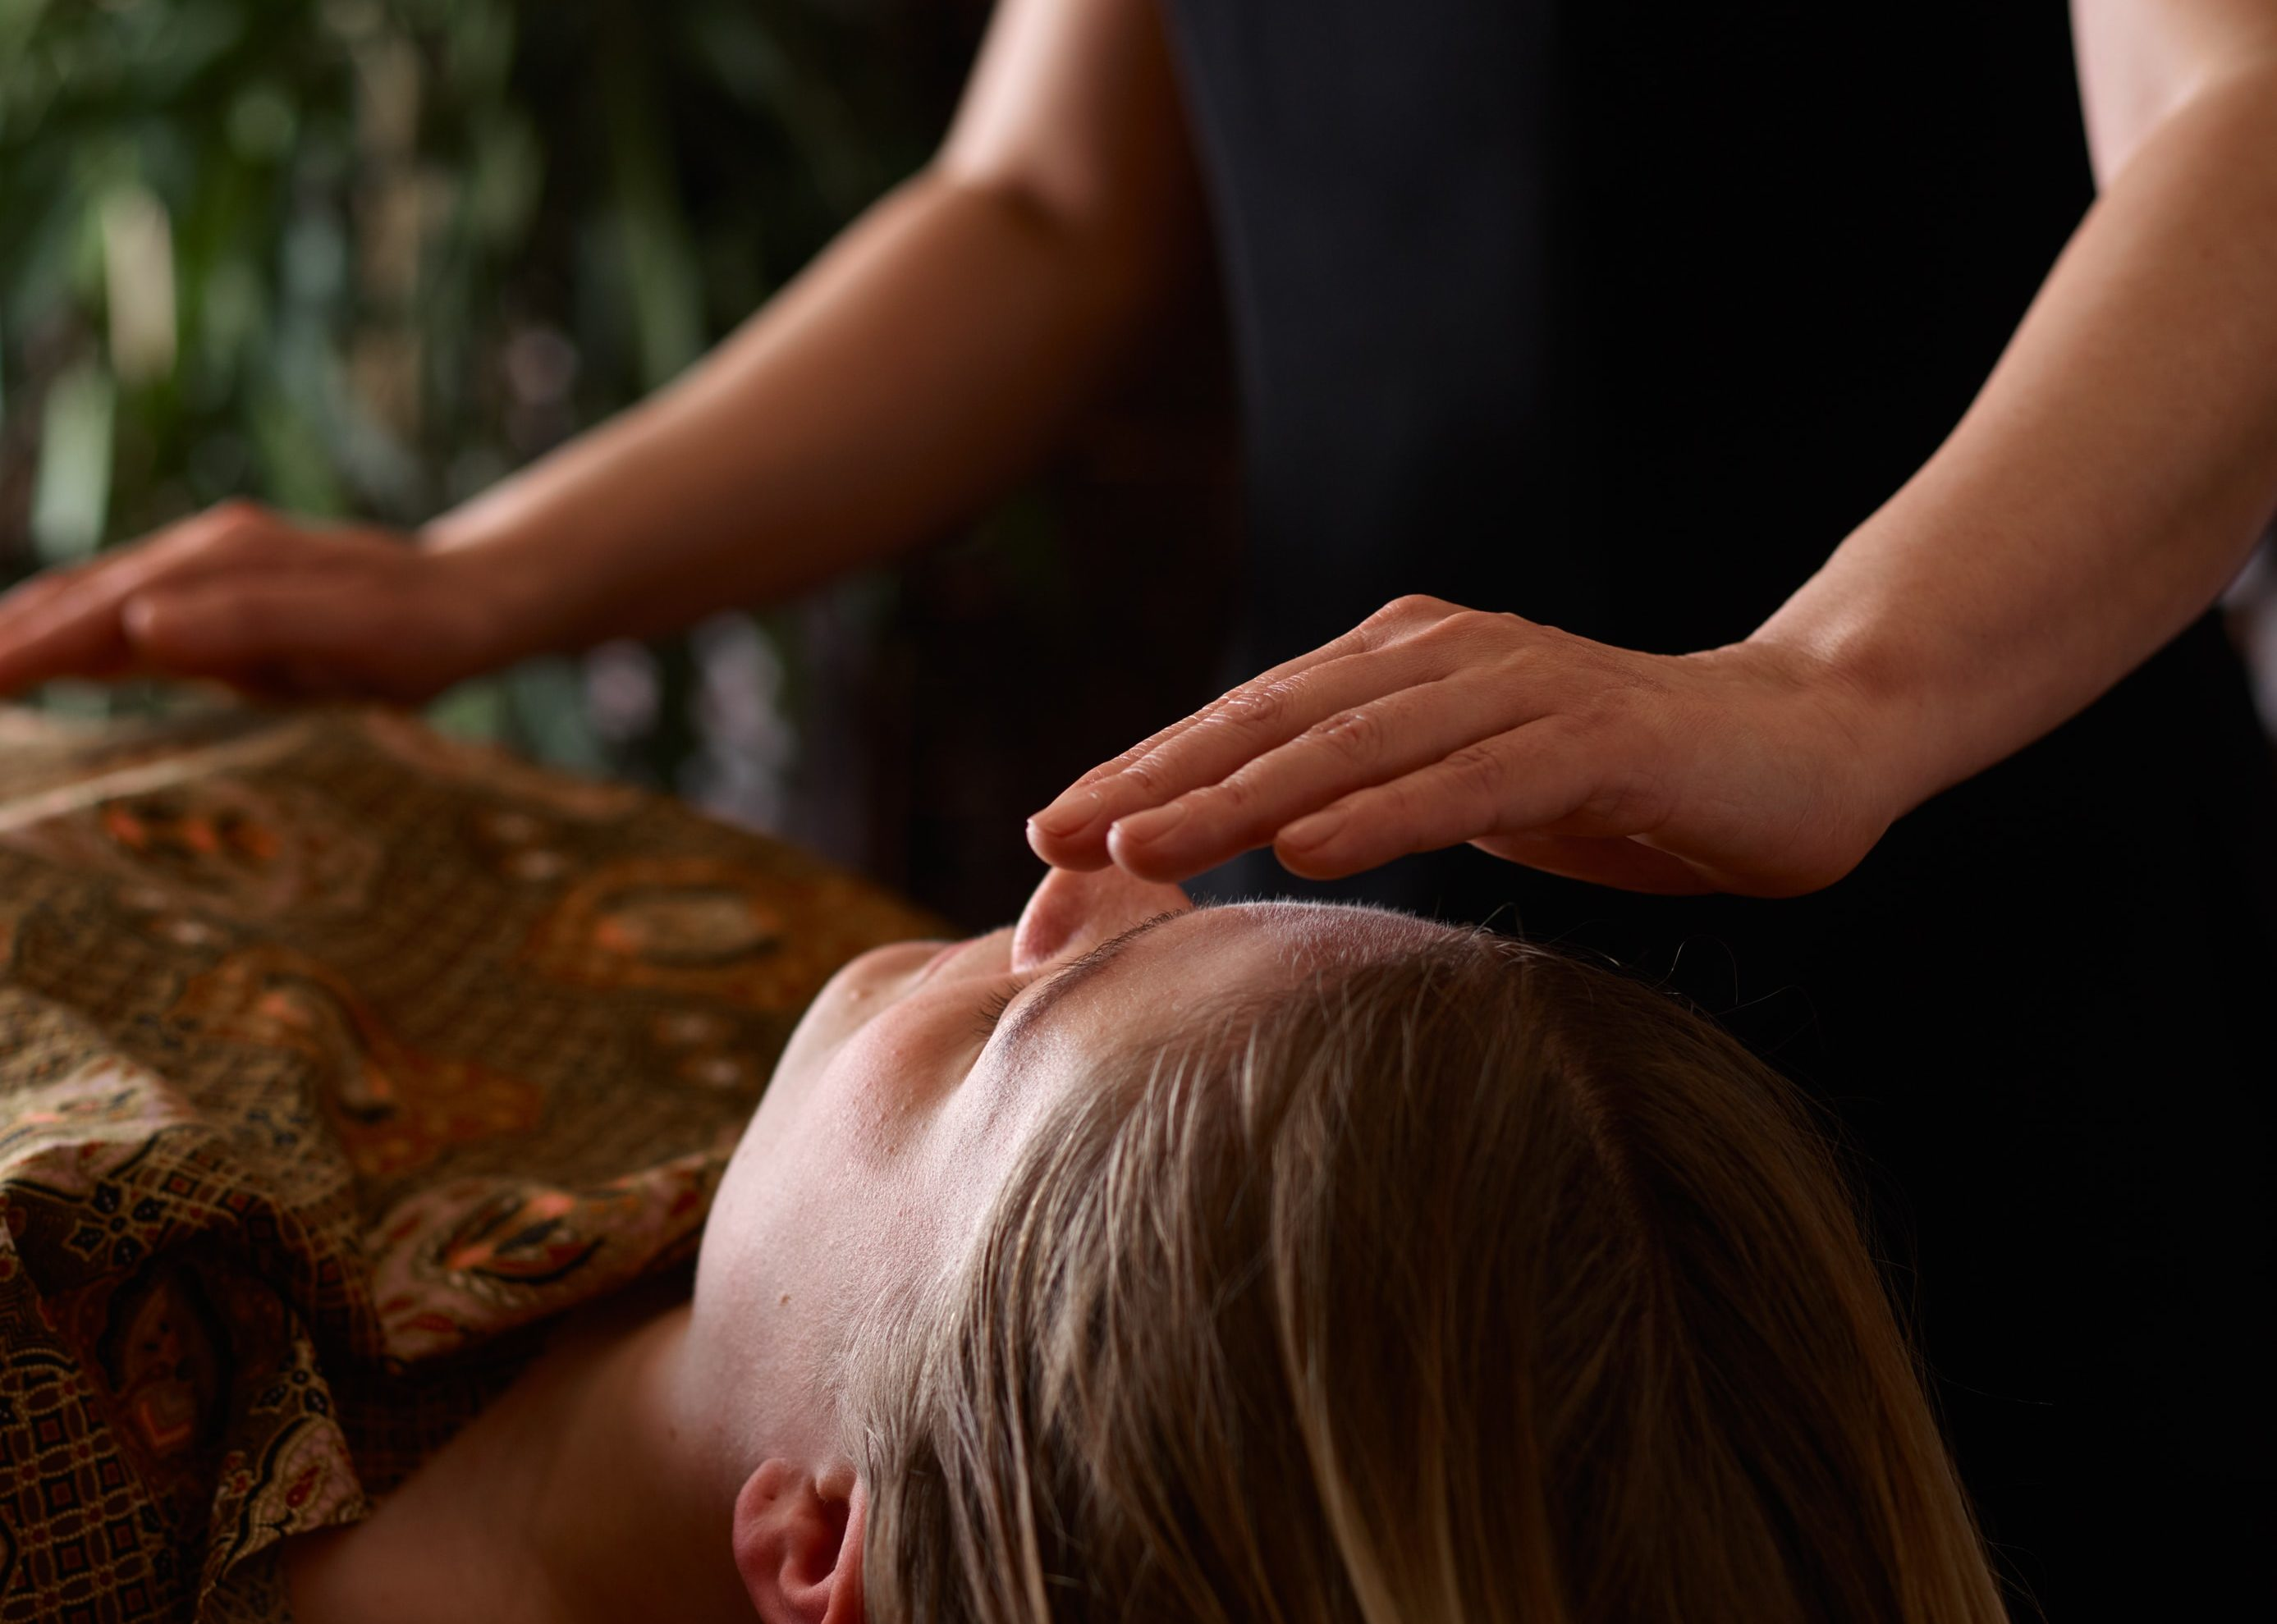 Reiki Healing is a gentle and profoundly relaxing treatment at SenSpa